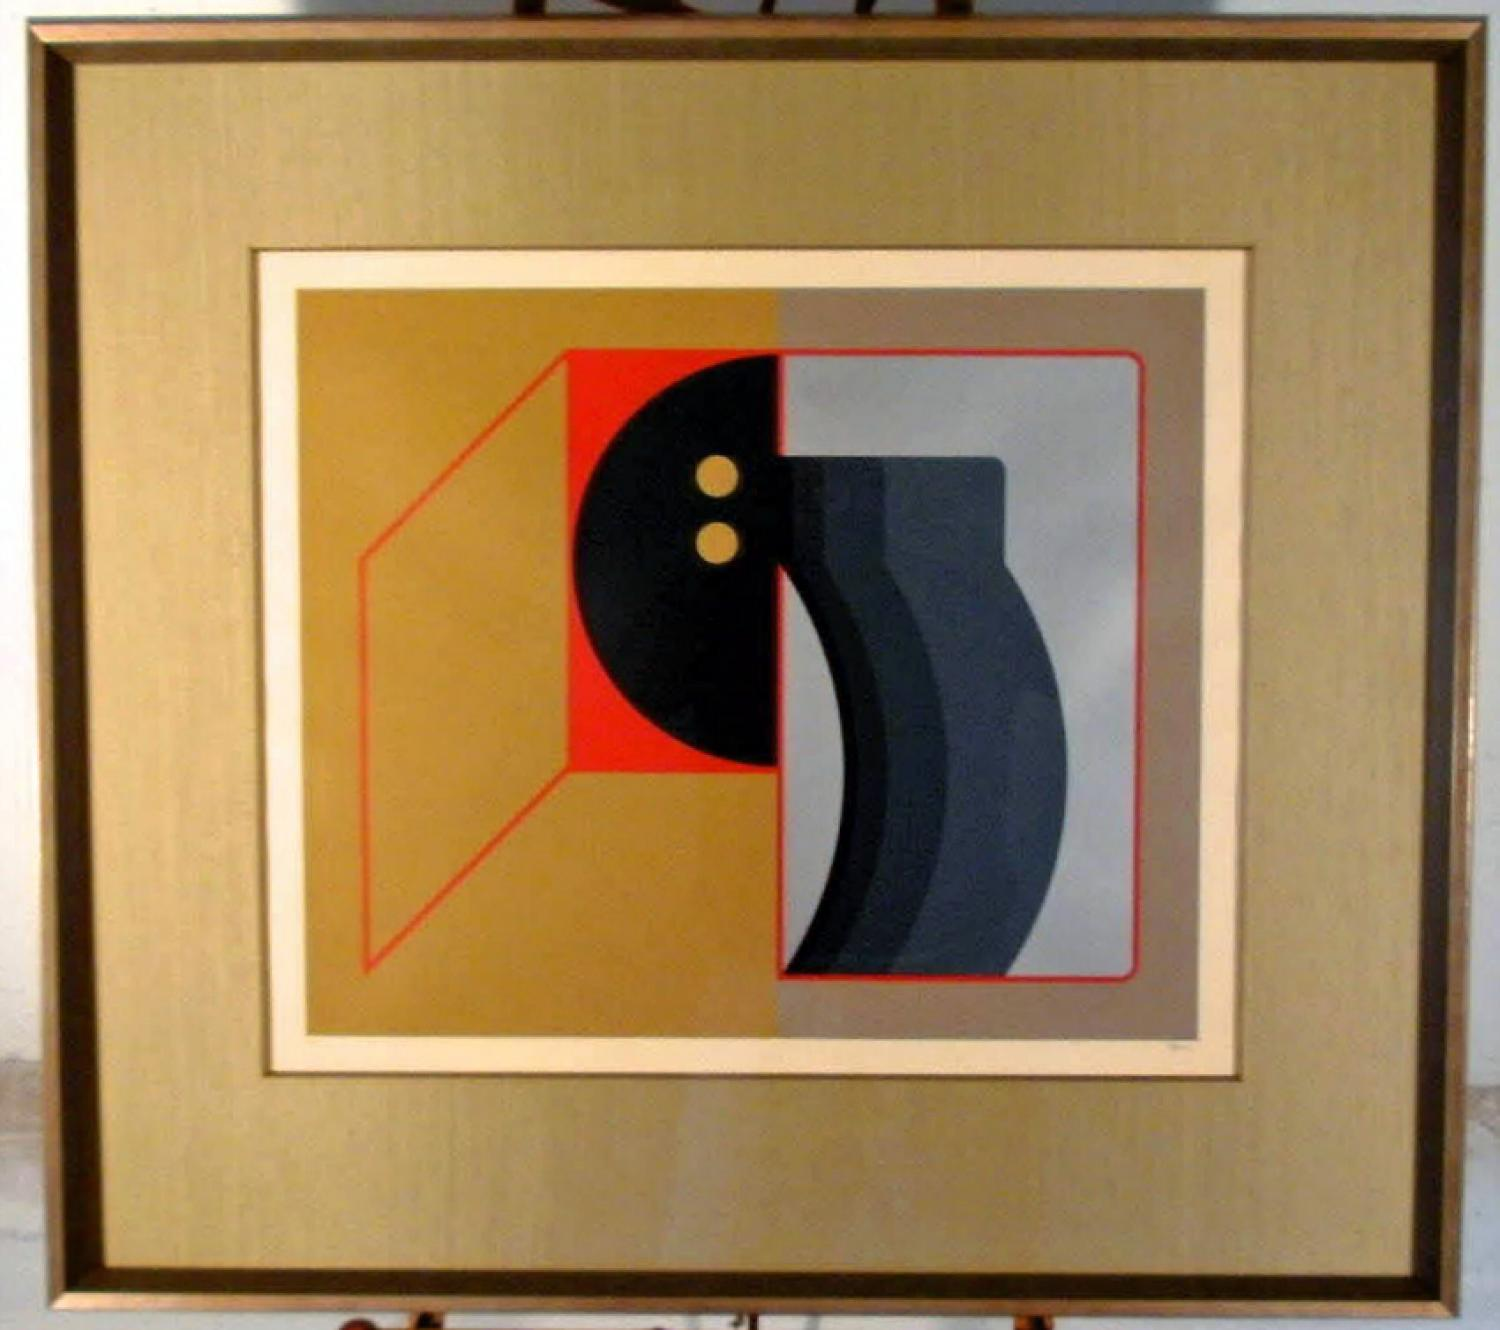 Manuel Felguerez Geometric abstract seragraph c1975